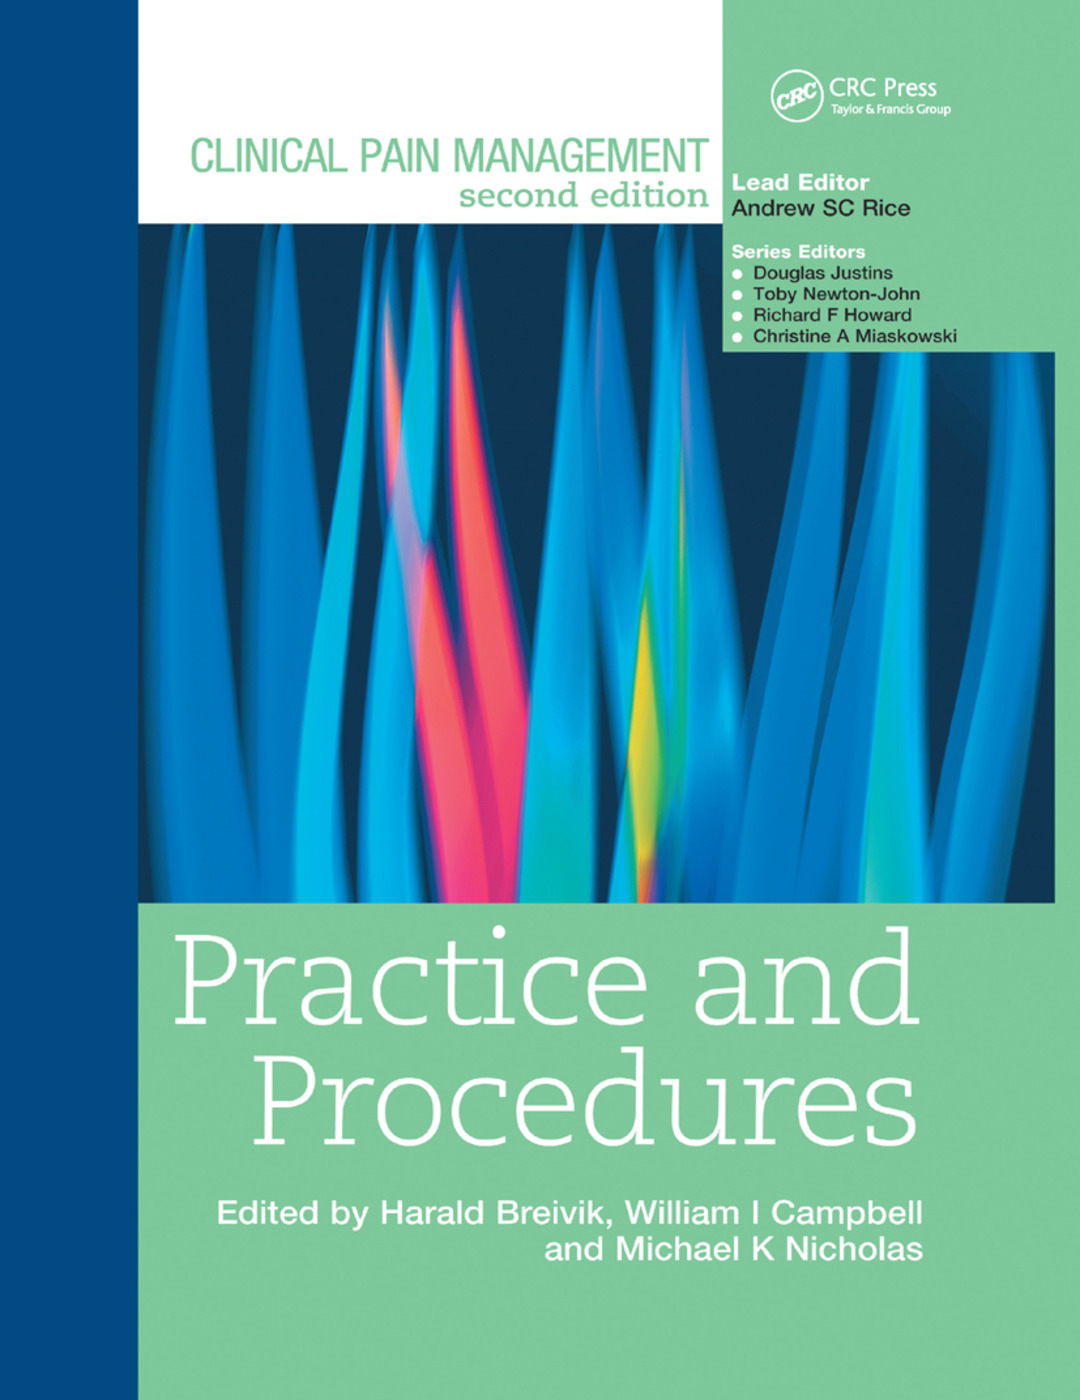 Clinical Pain Management : Practice and Procedures book cover